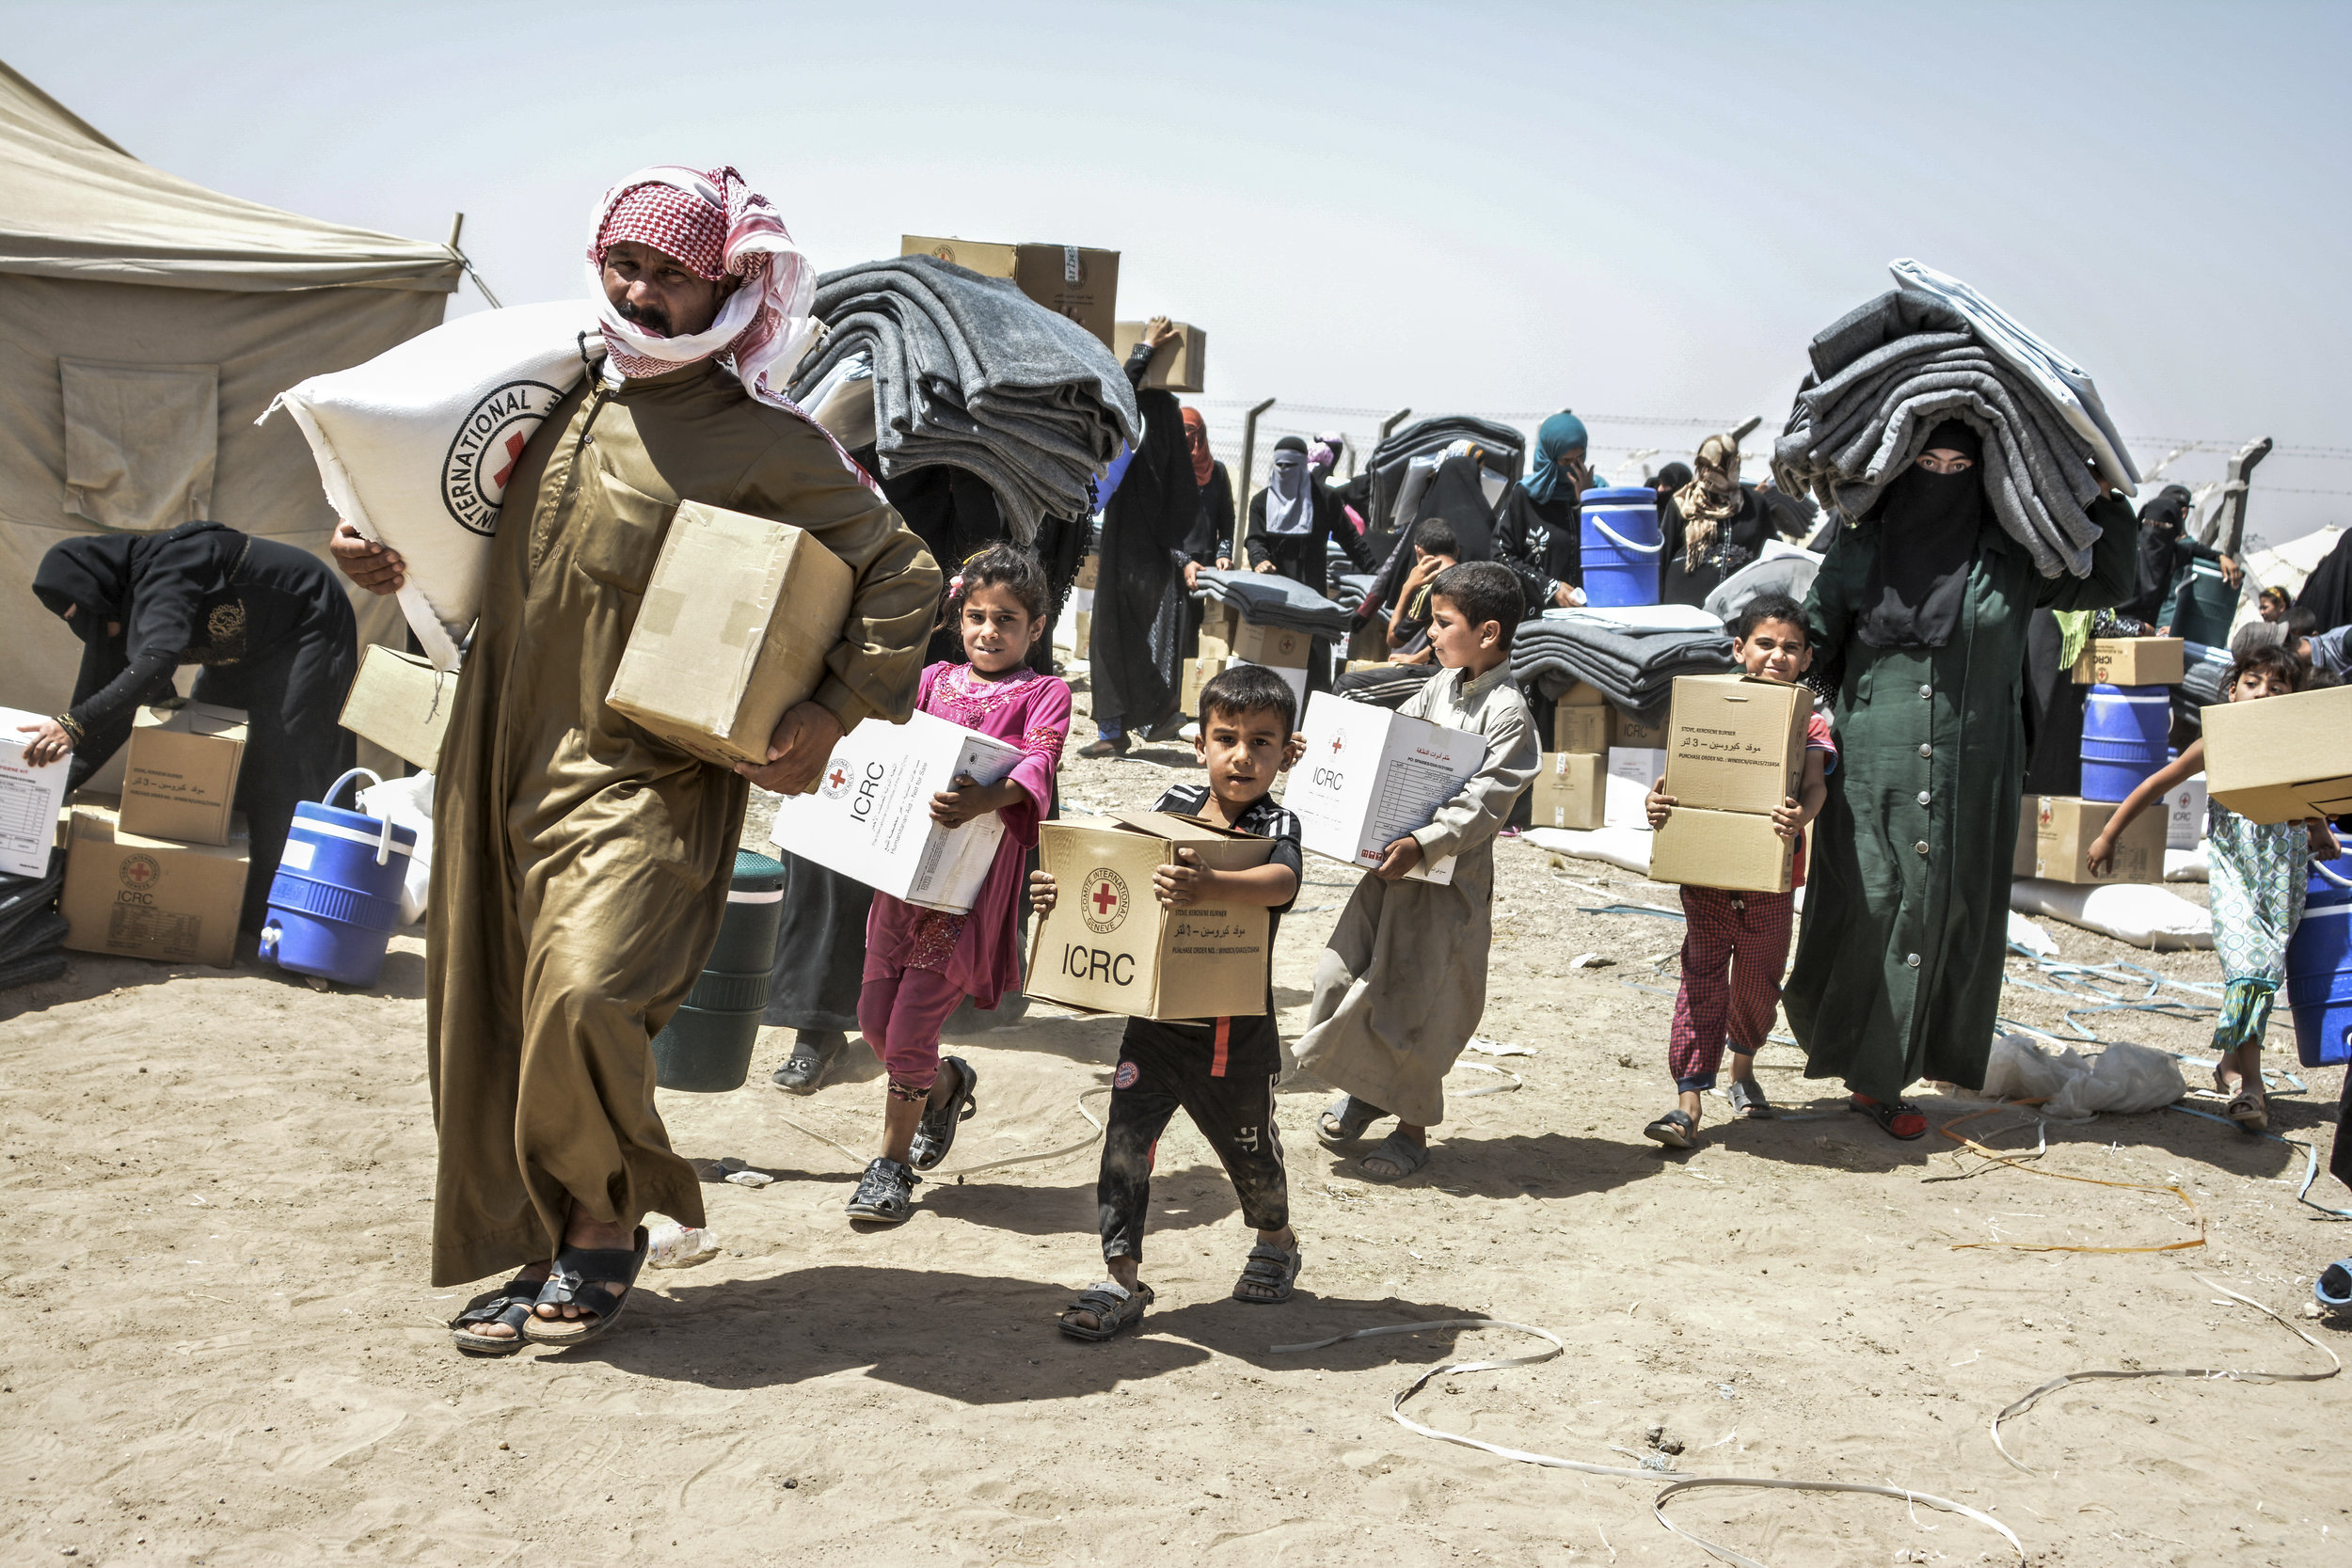 Fallujah, Iraq. The ICRC distributes food and relief items to displaced persons.